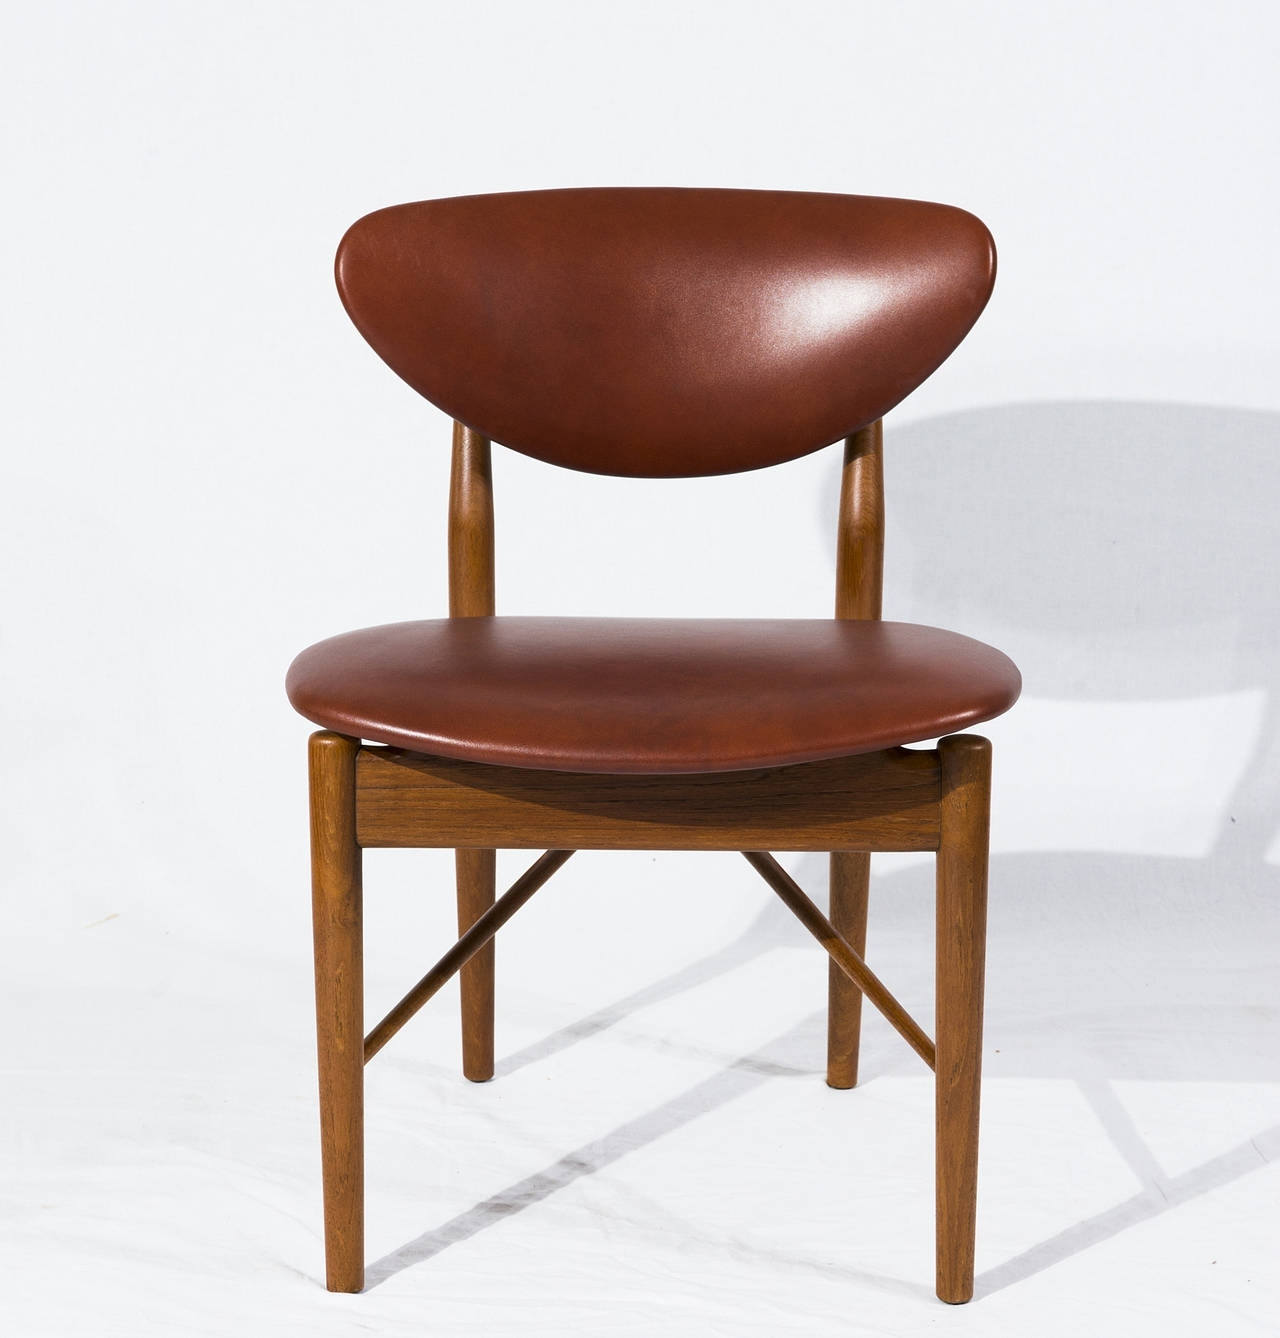 Finn Juhl Nv 55 Side Chair At 1stdibs Throughout Fashionable Dodger Side Chairs (View 16 of 20)